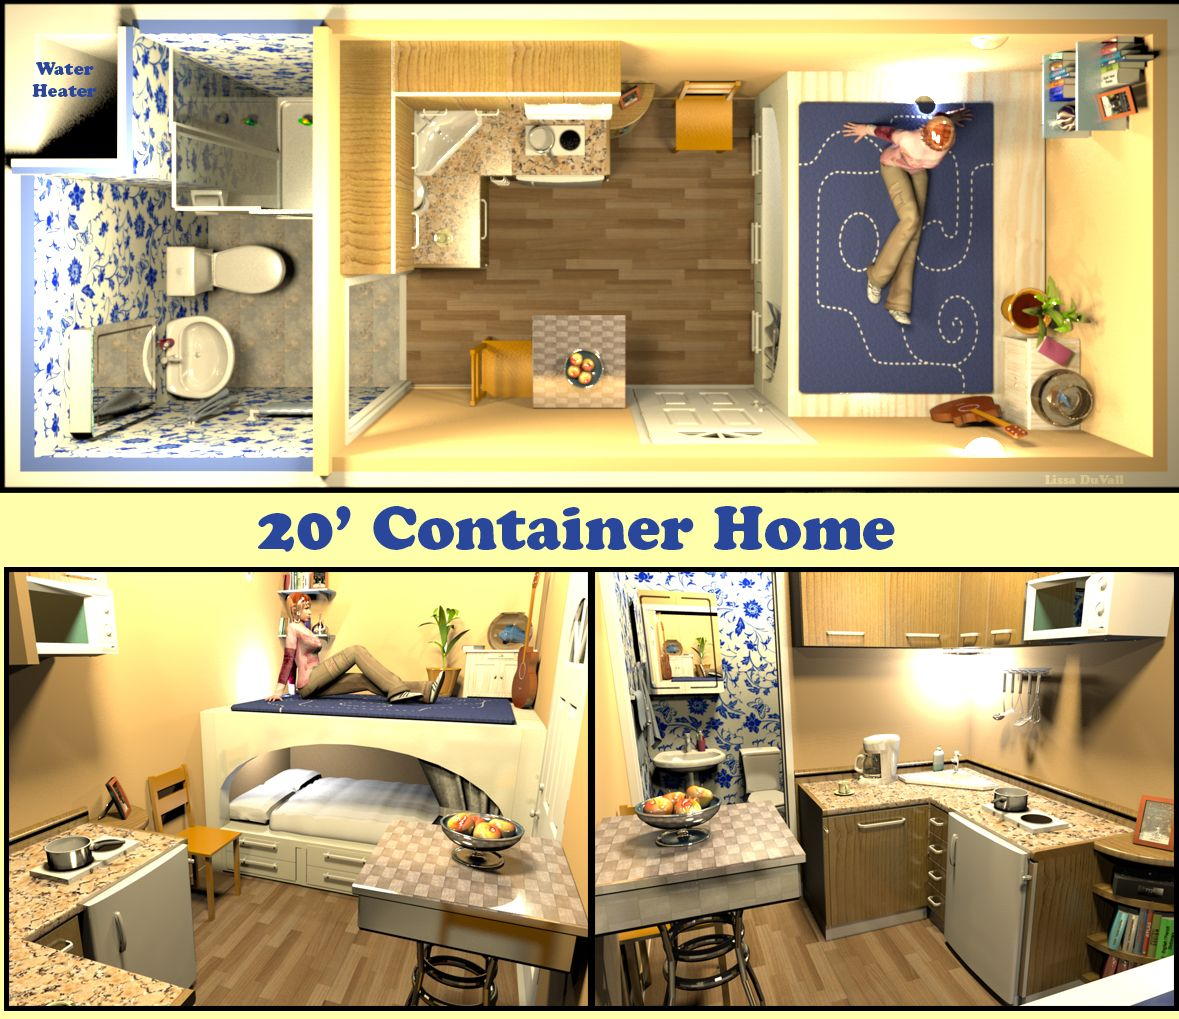 20 X8 Container Home Full Size Bed A Very Space Efficient Floor Plan For A Container Home C Container House Building A Container Home Container House Plans